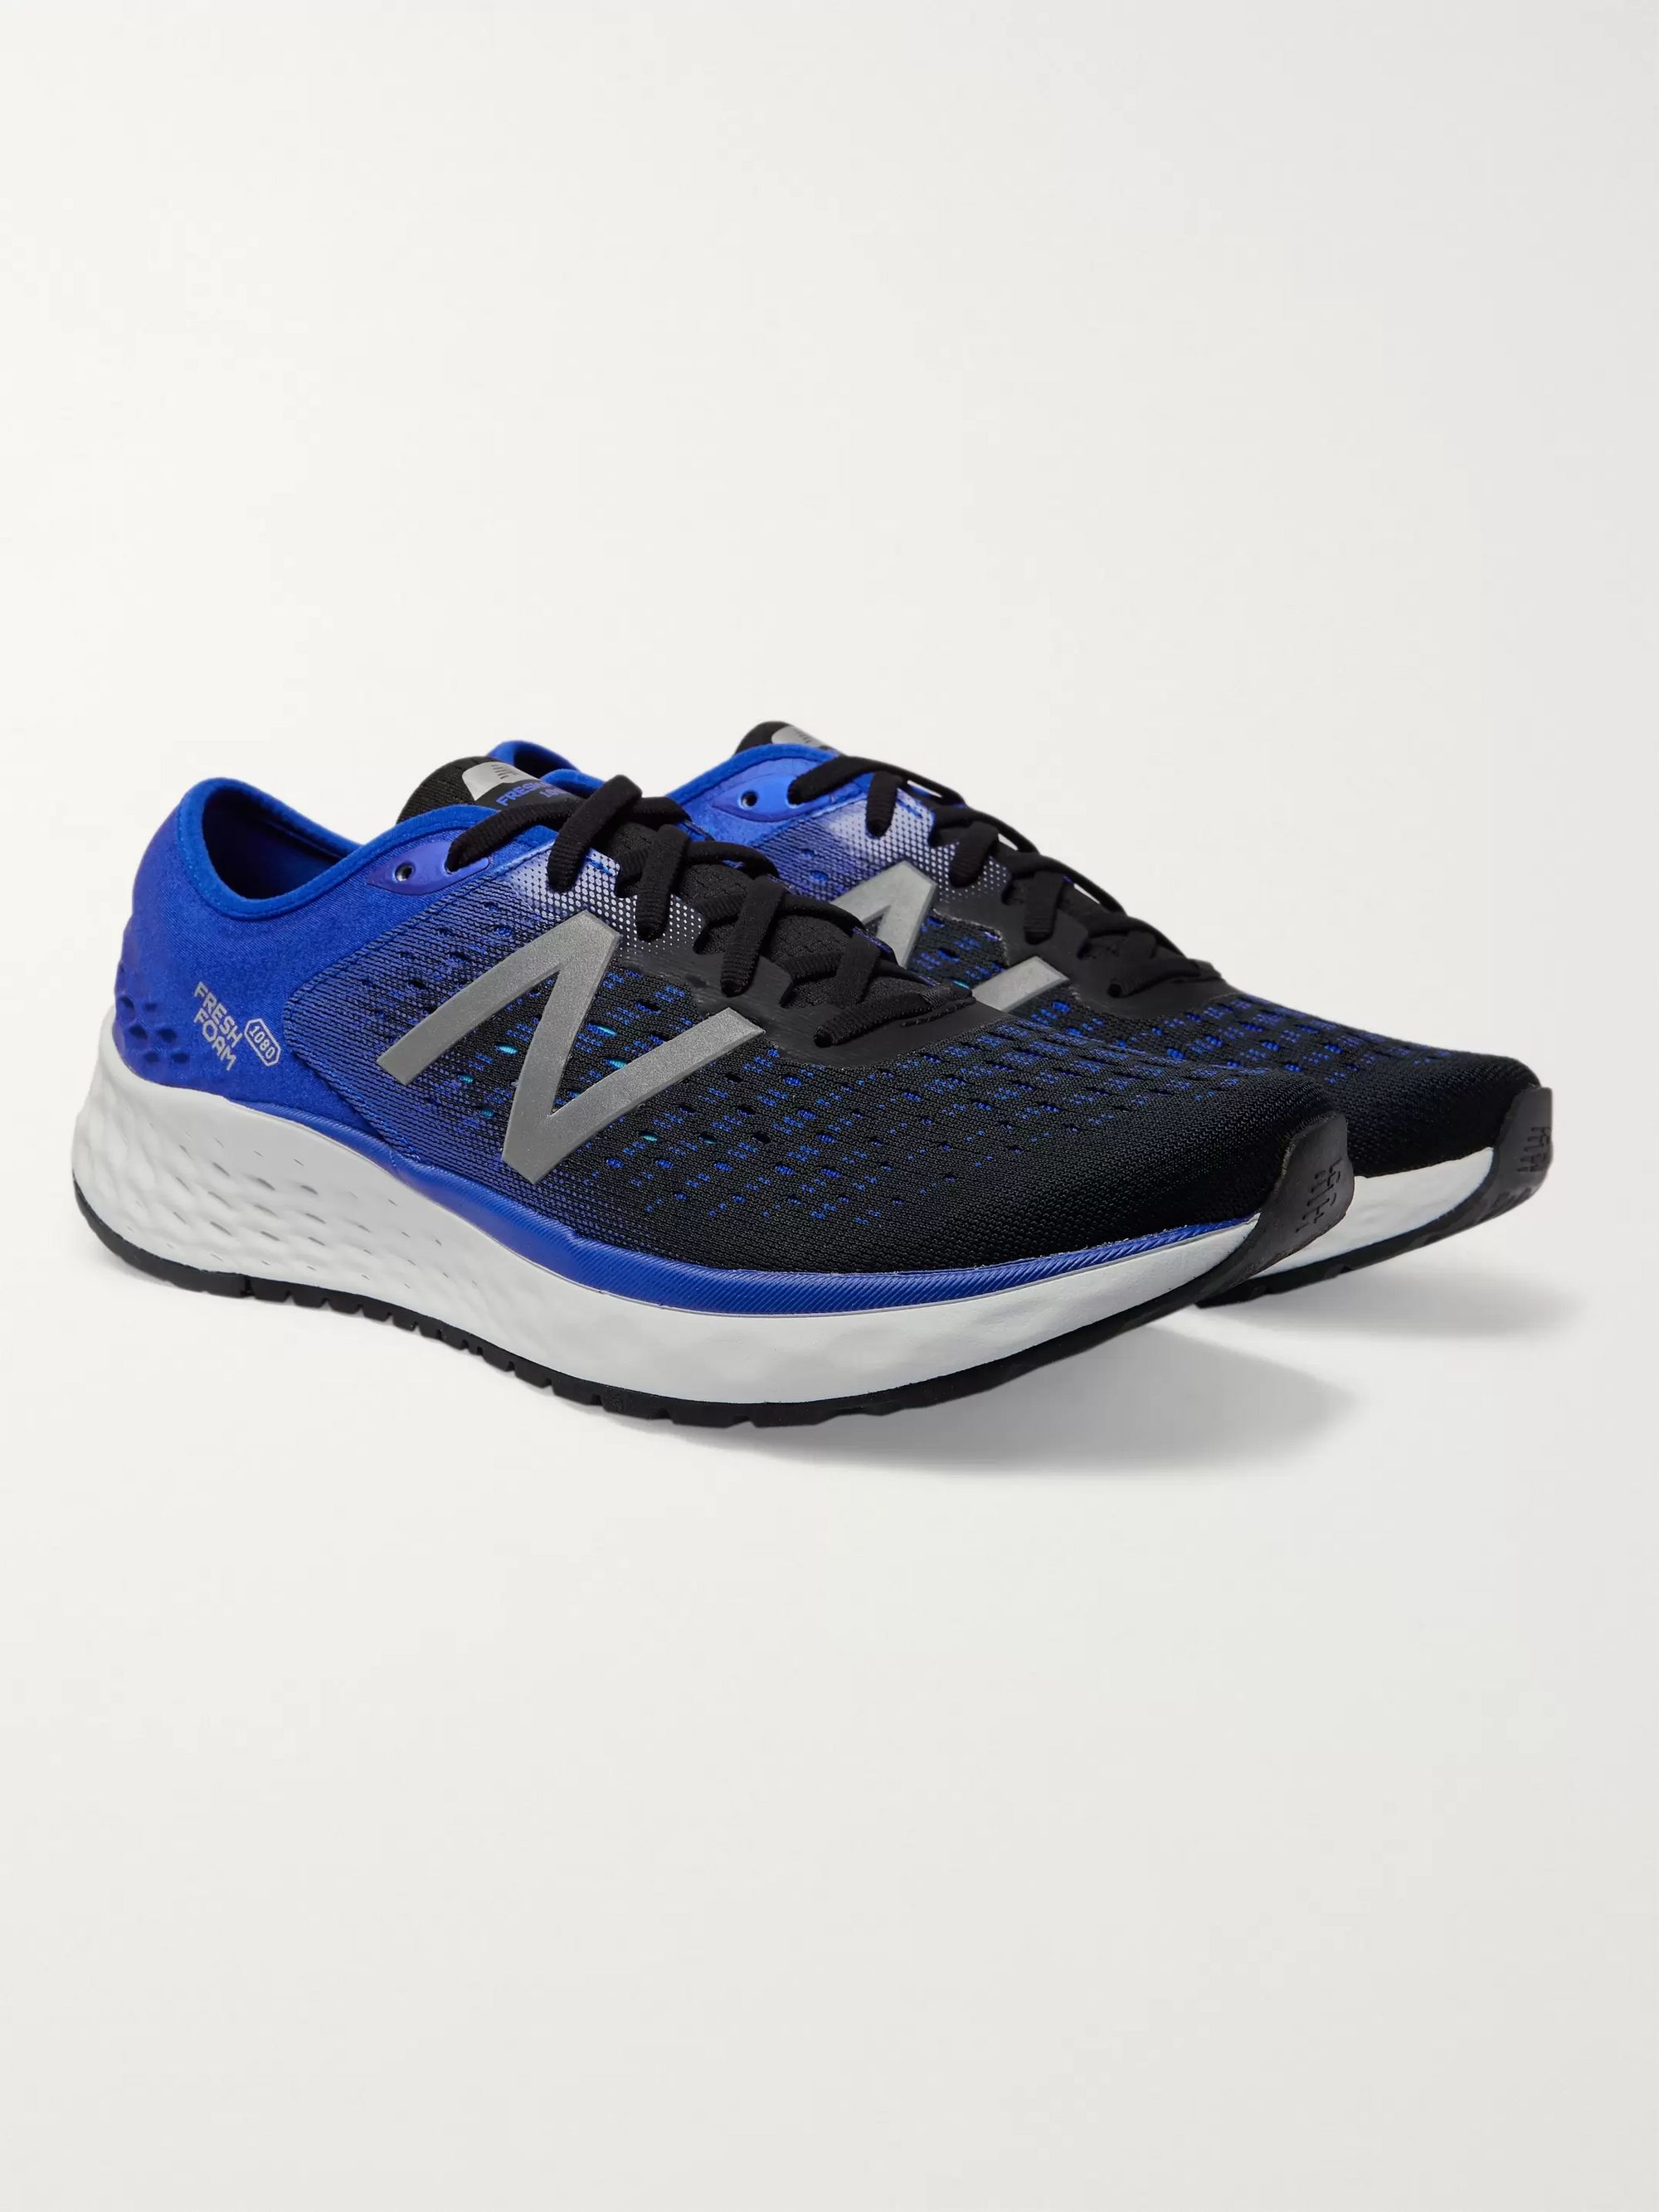 New Balance 1080v9 Mesh and Neoprene Running Sneakers